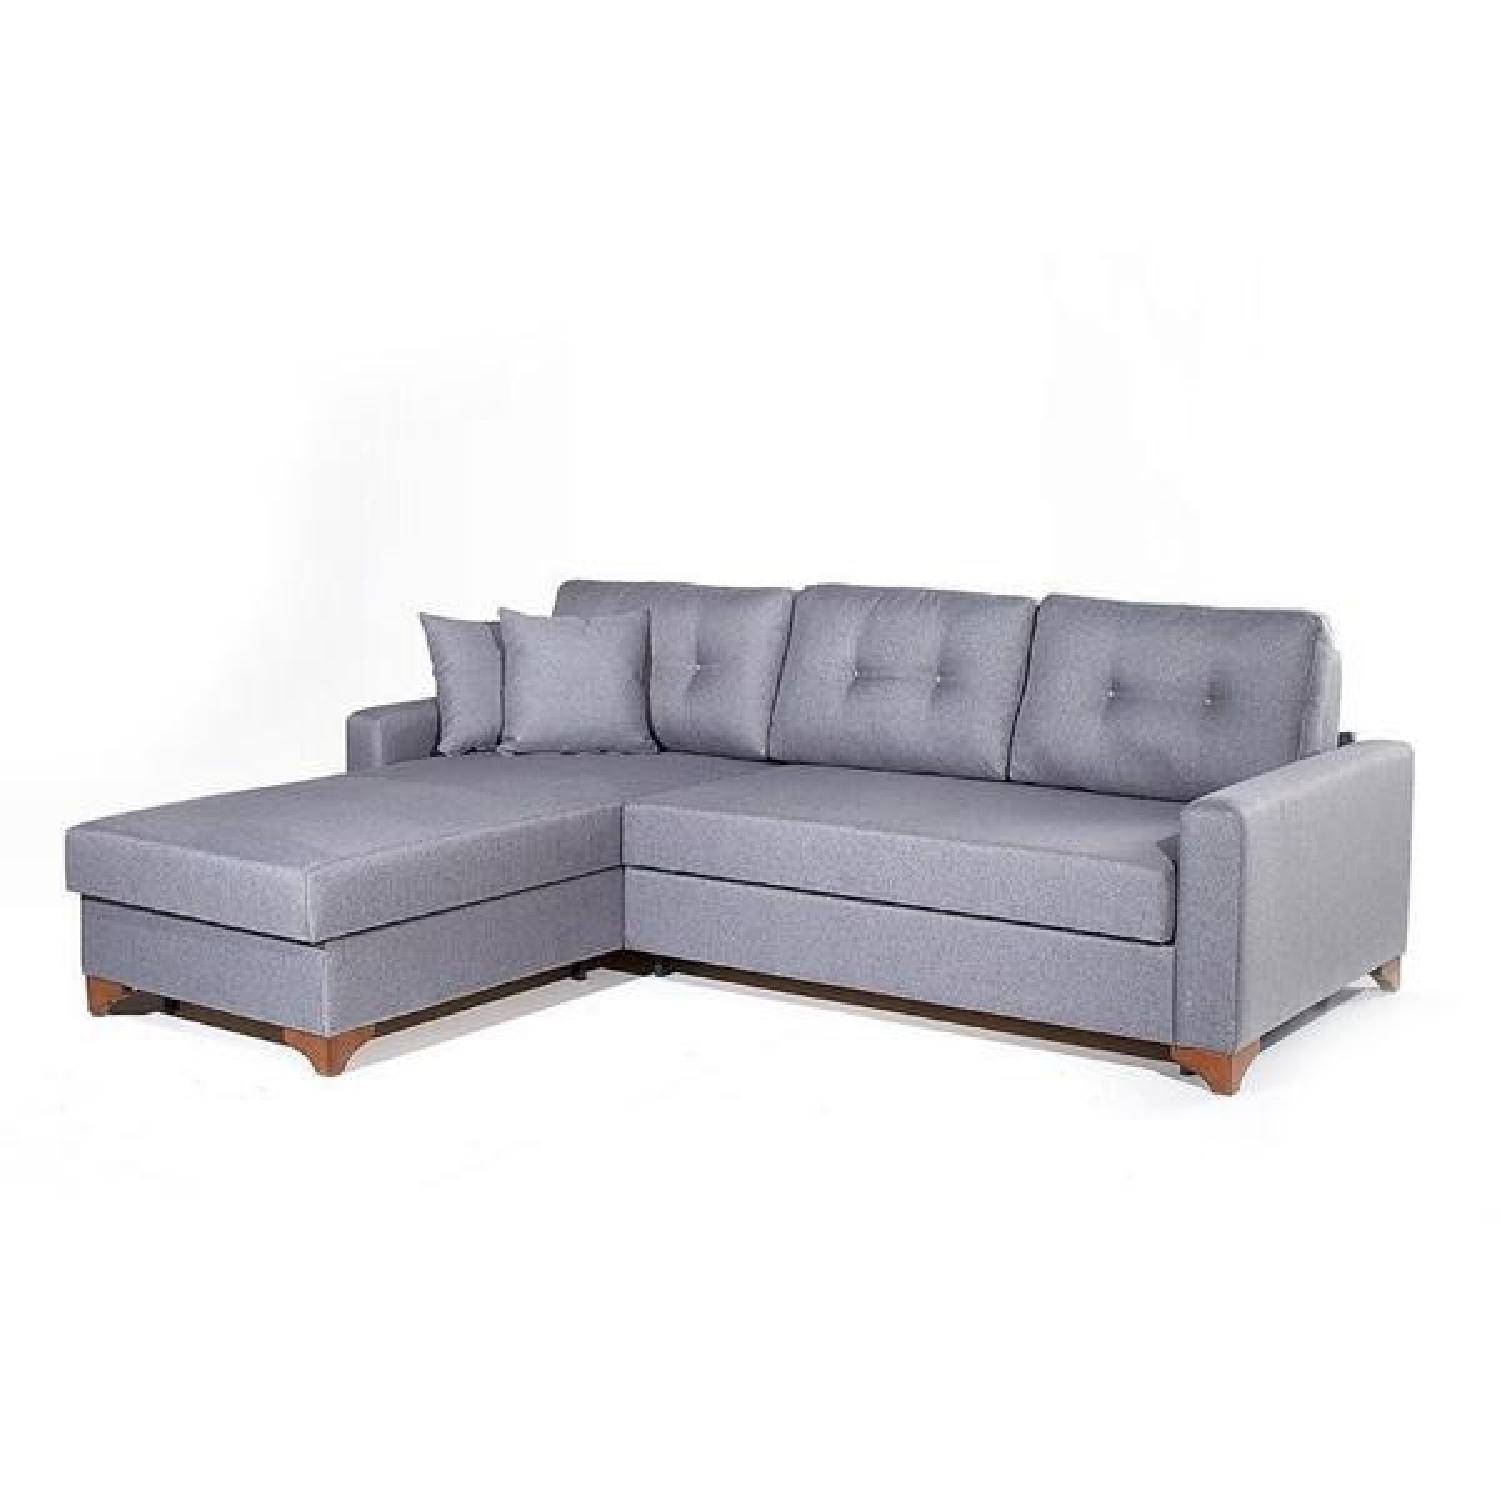 Sleeper Sectional Sofa W/ Storage - Aptdeco in Sectional Sofa With Storage (Image 18 of 25)